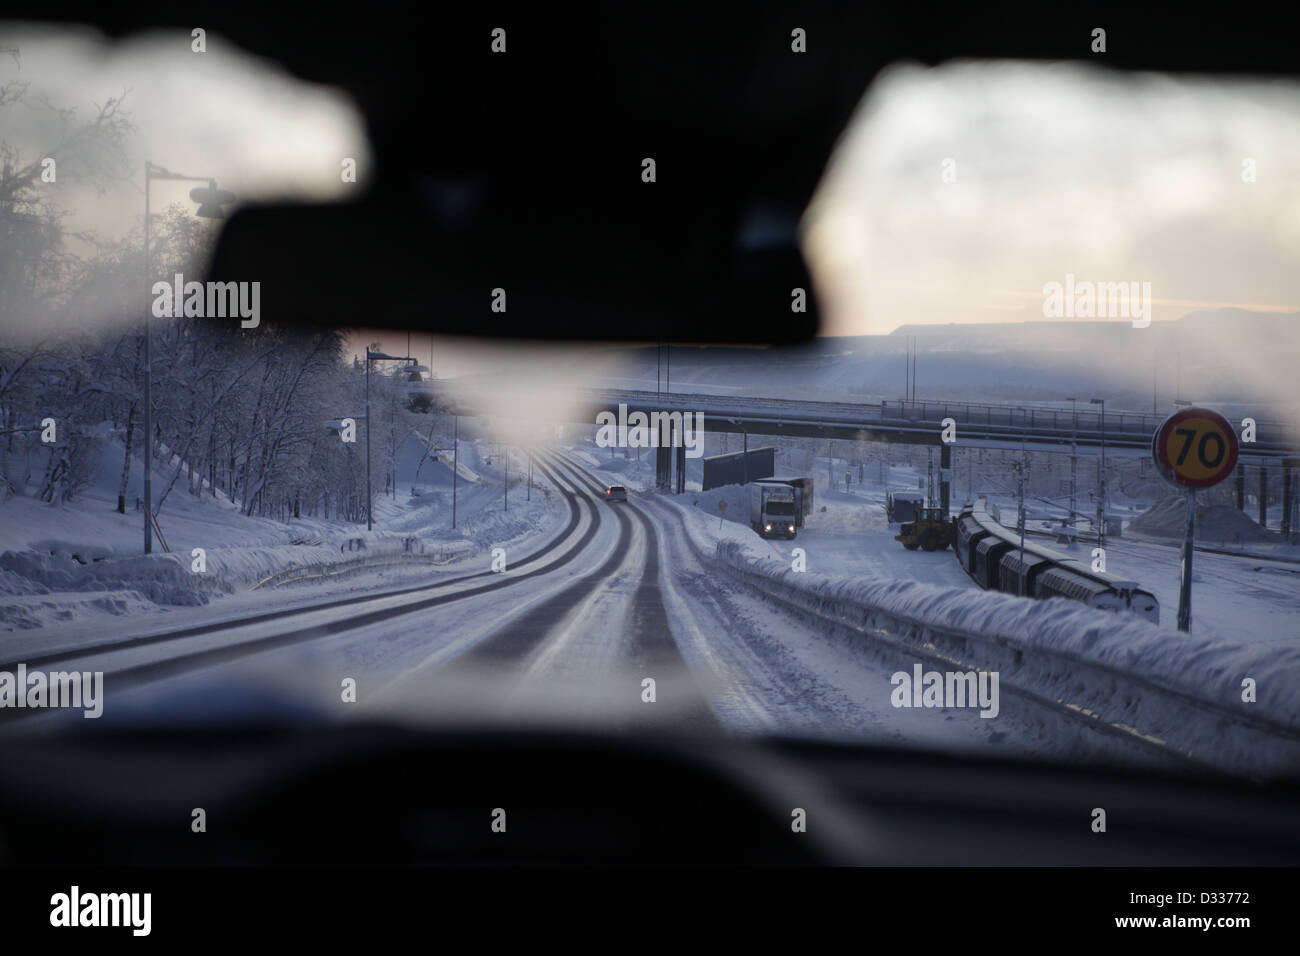 Road covered in snow and ice taken from inside car. - Stock Image